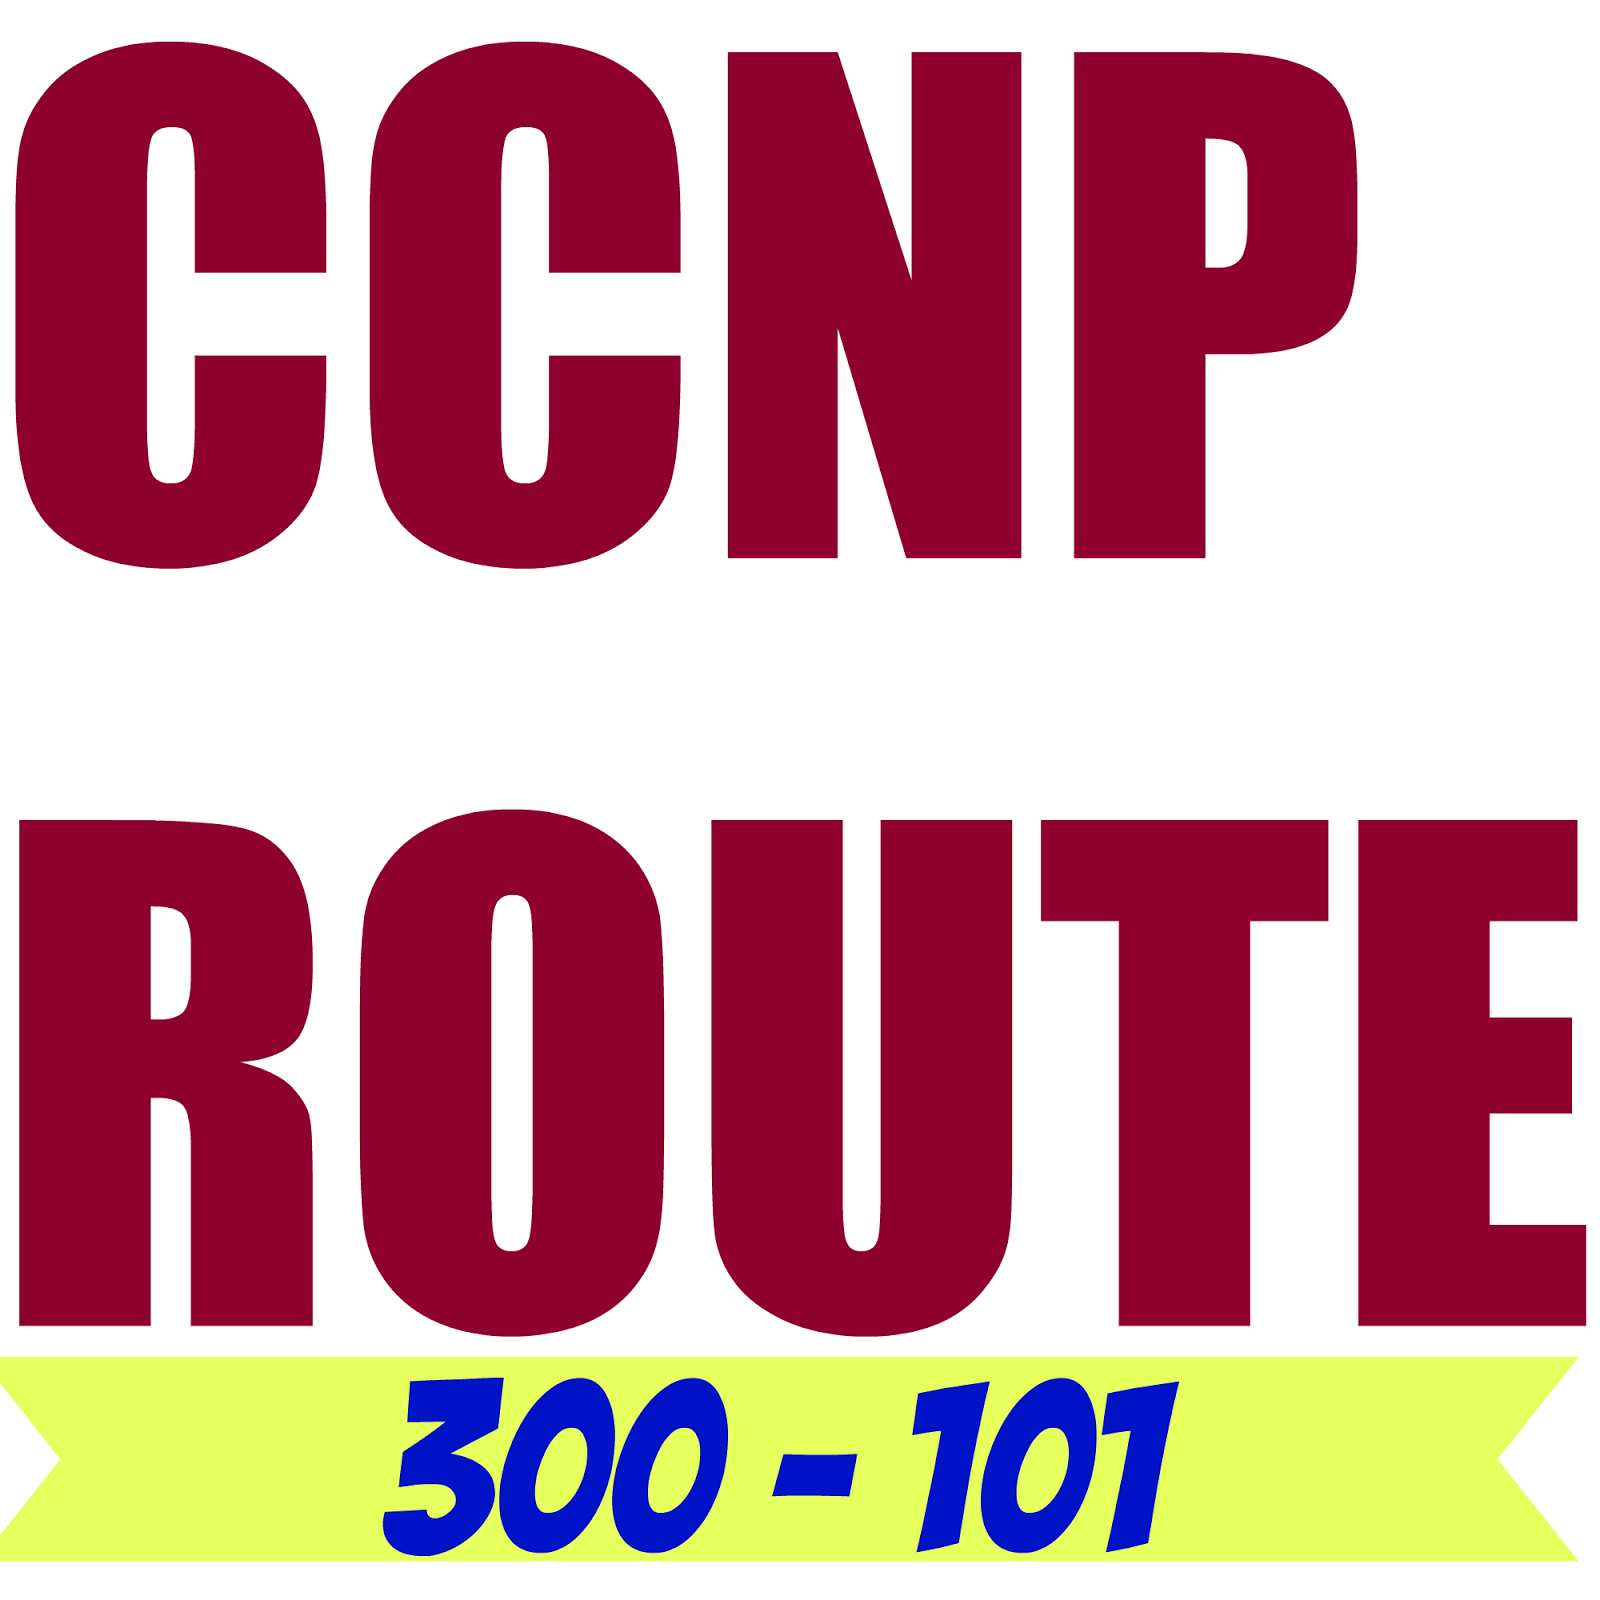 CCNP Route 300-101 Labs